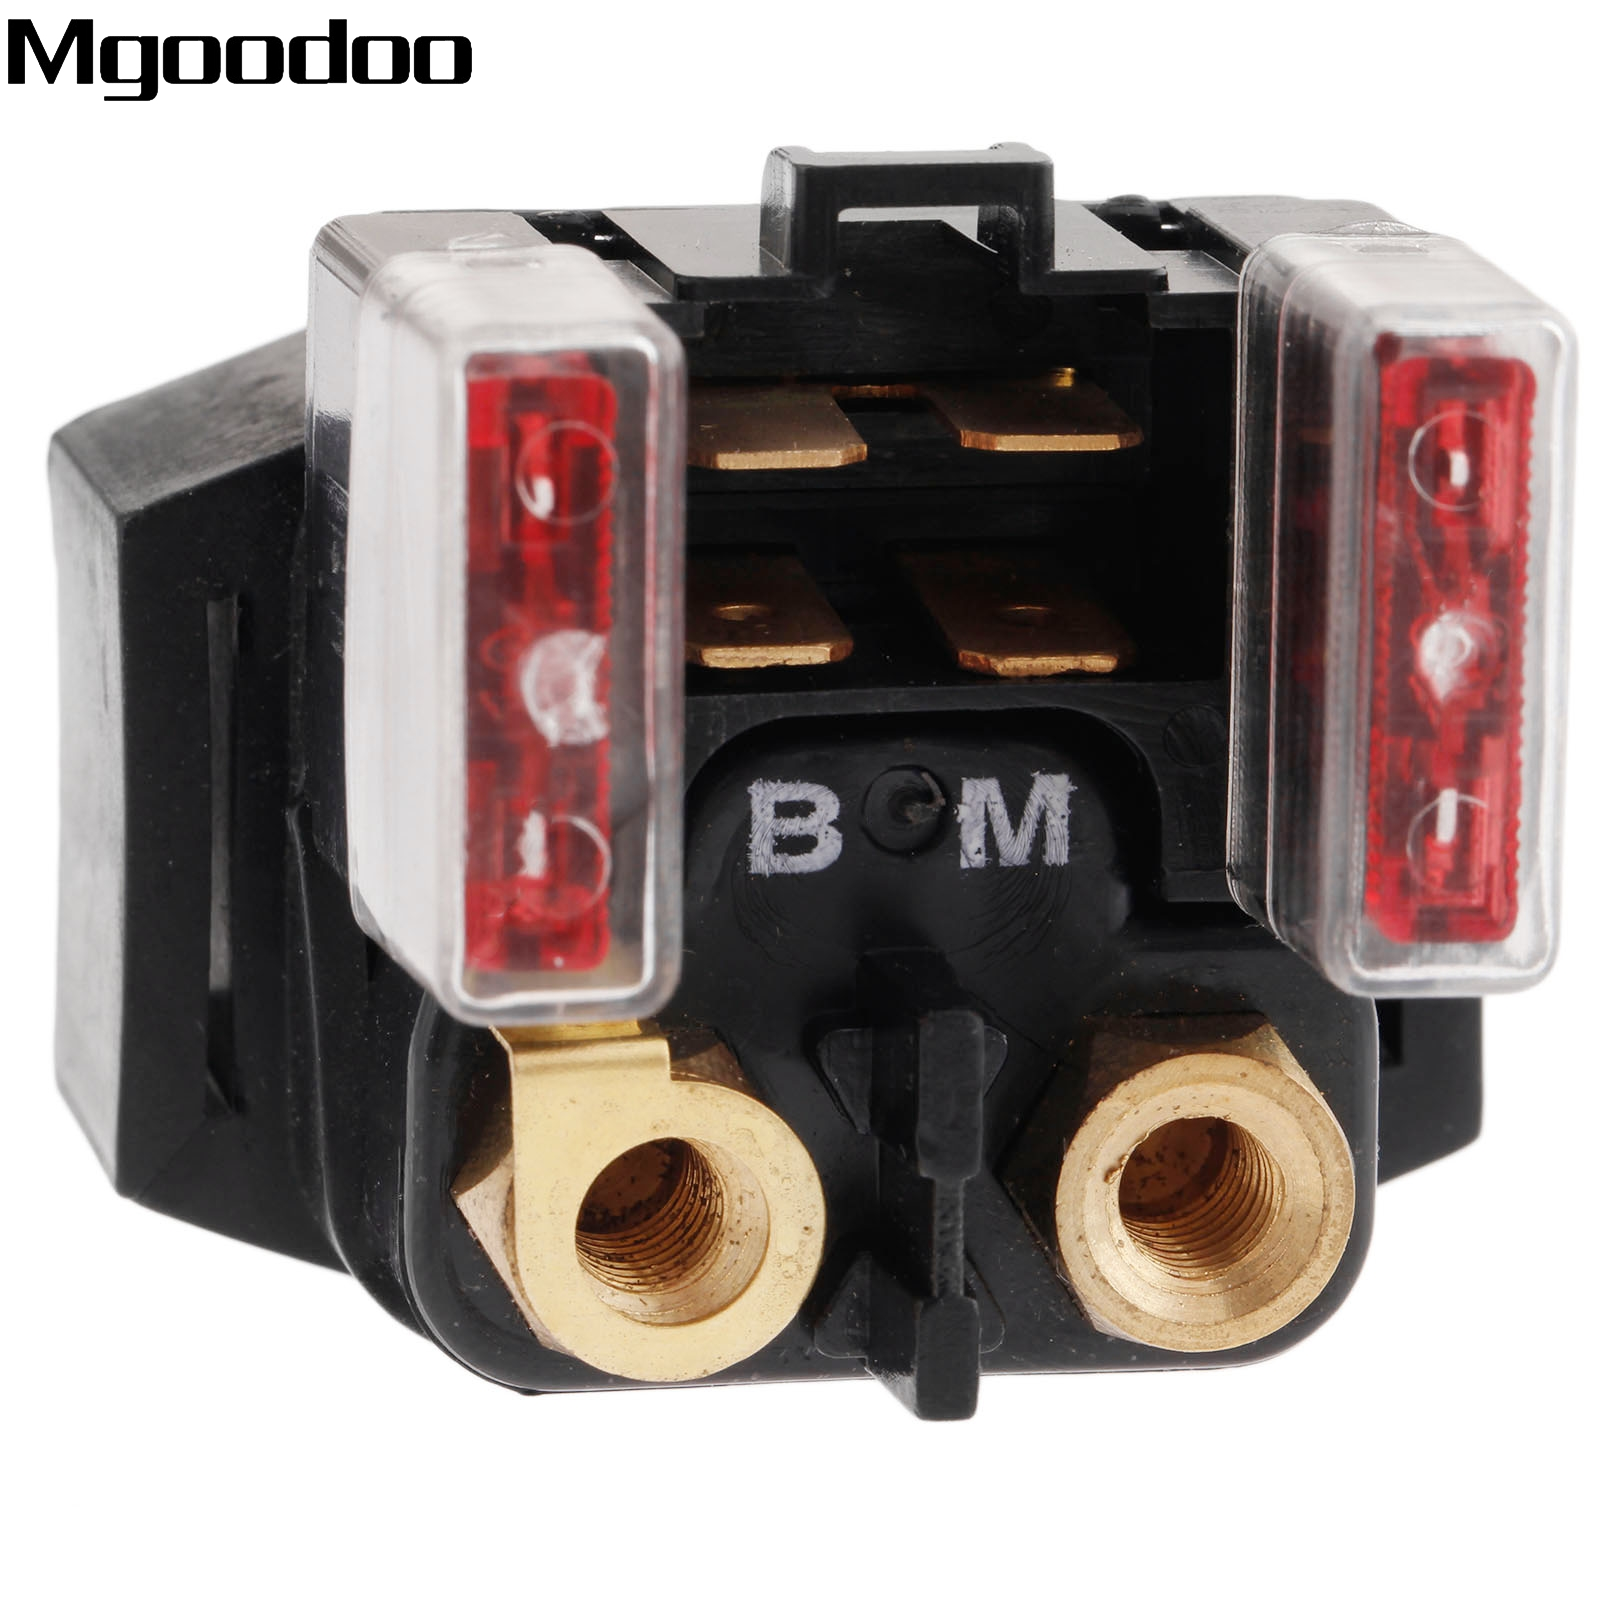 medium resolution of mgoodoo motorcycle atv starter relay solenoid for yamaha grizzly 660 yfm660 2002 2008 2003 2004 2005 2006 motor electrical parts in motorbike ingition from